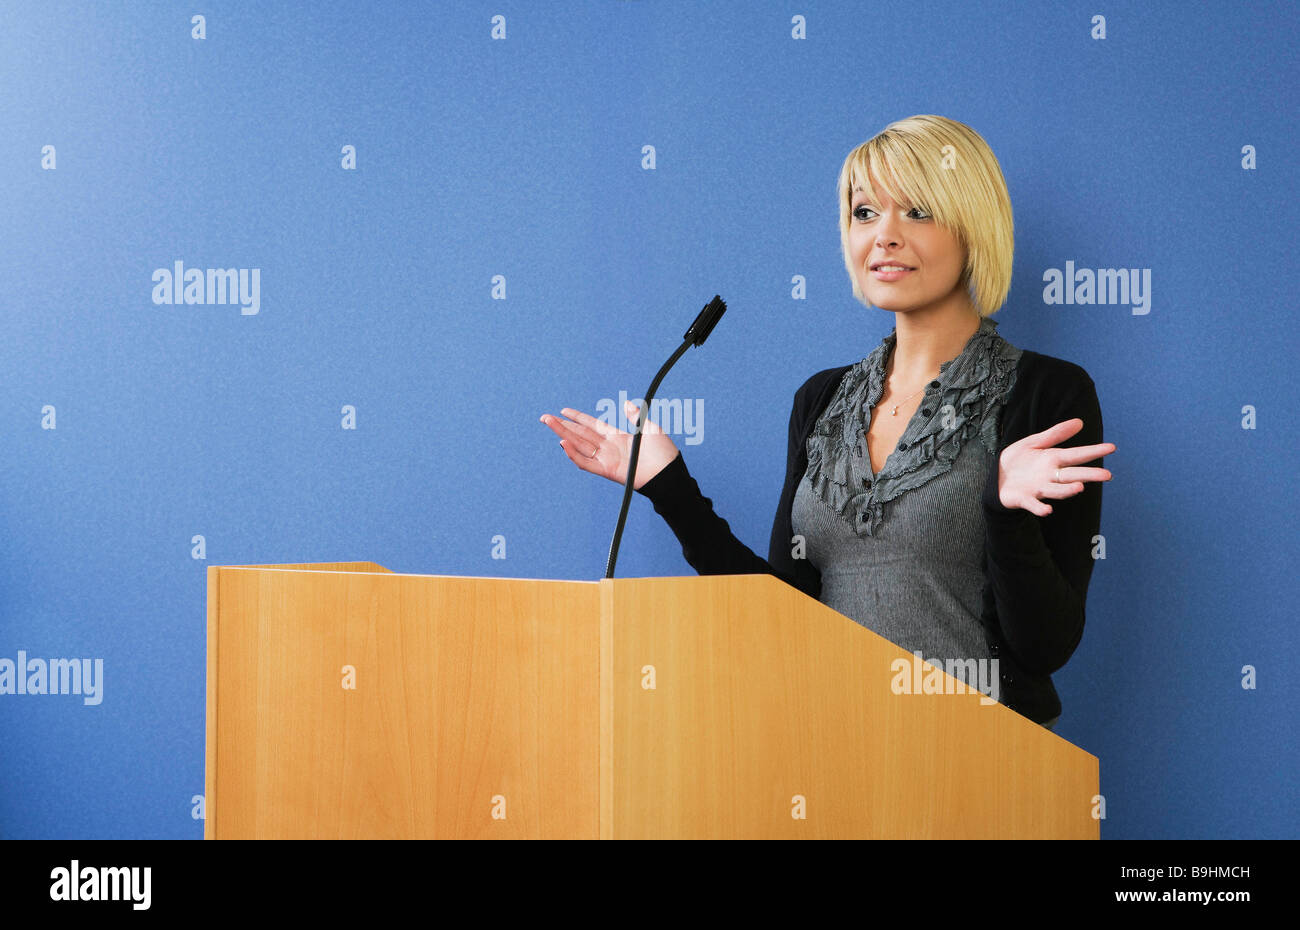 Woman talking from lectern - Stock Image